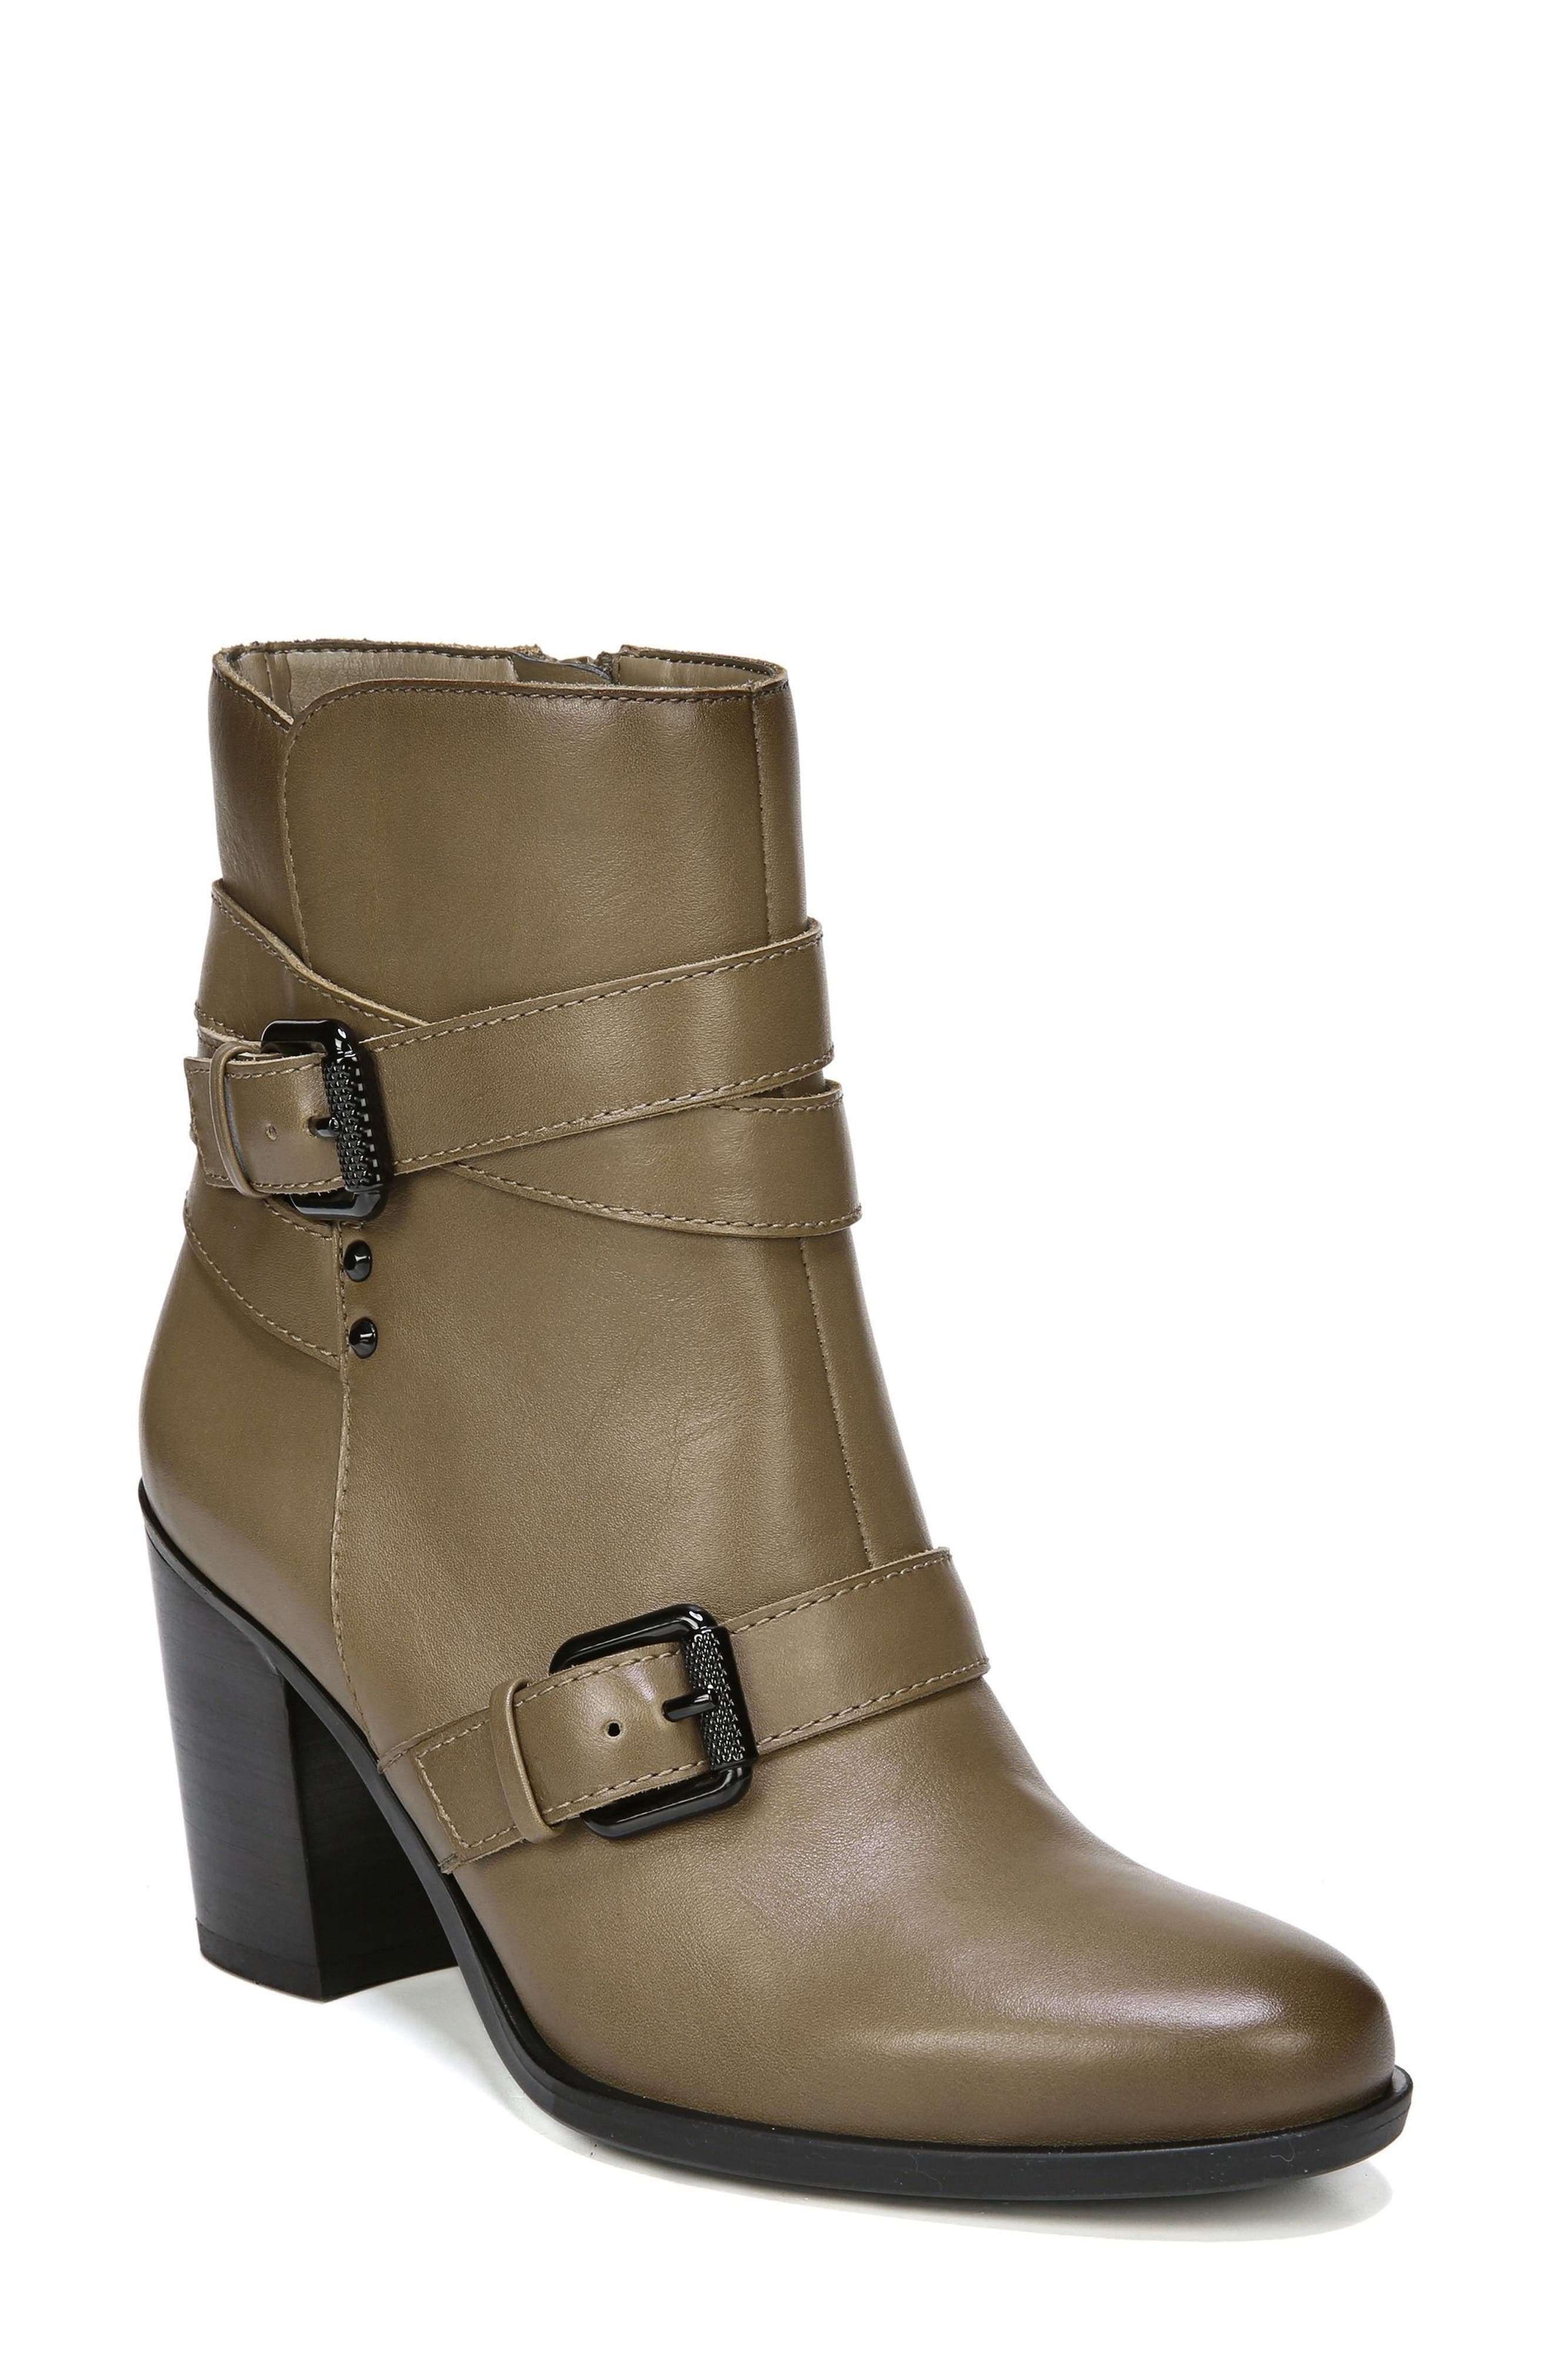 Main Image - Naturalizer Karlie Buckle Bootie (Women)